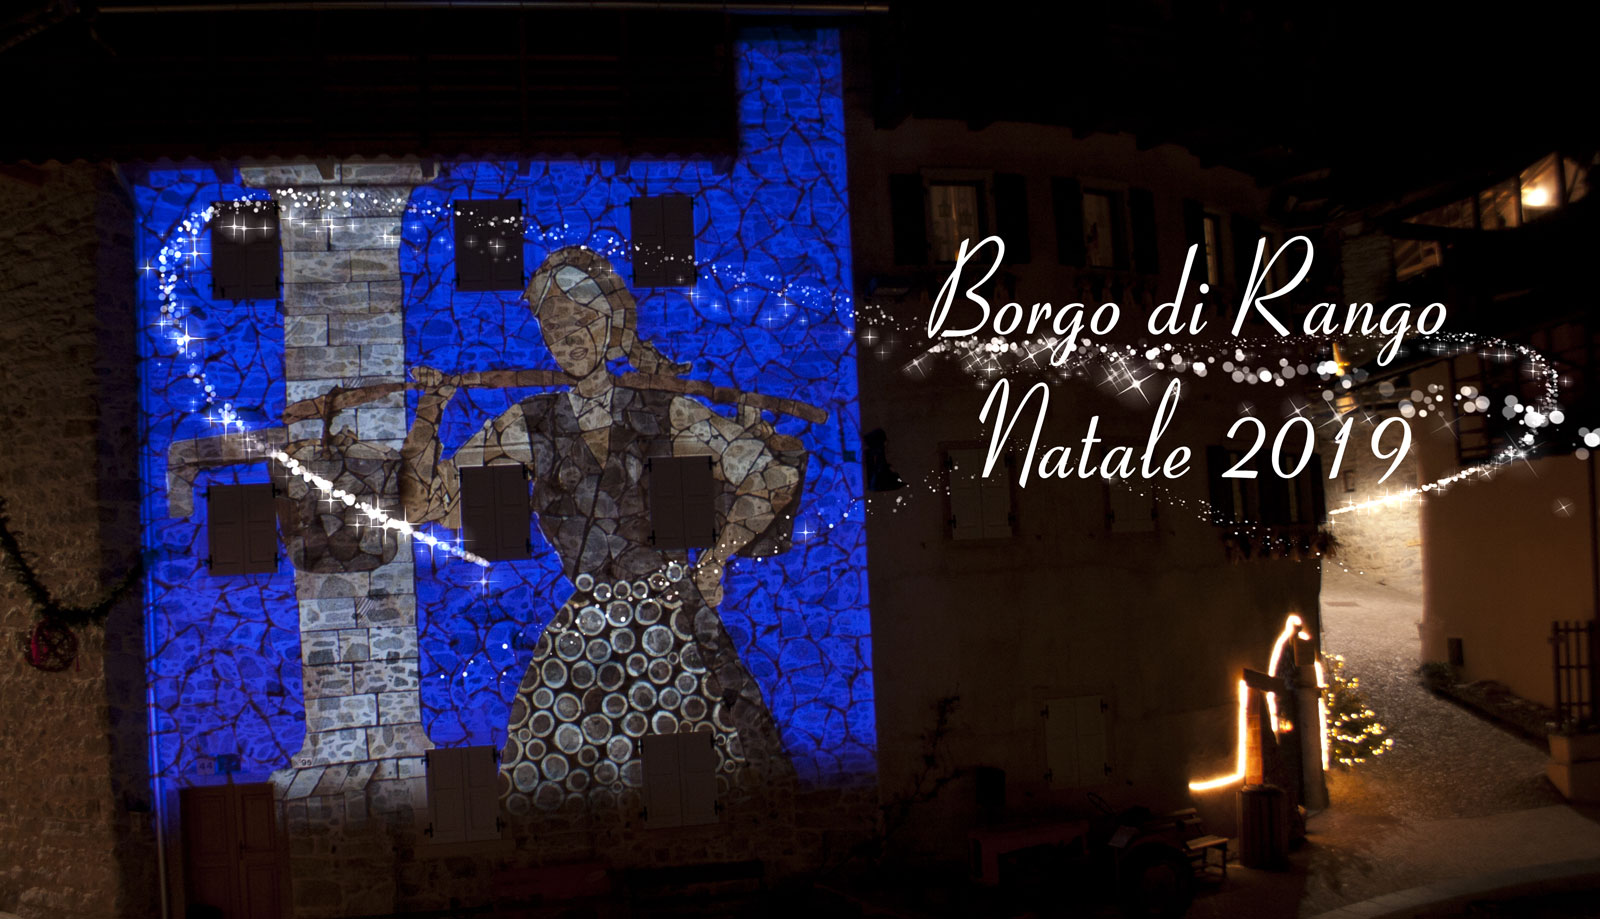 Video mapping in the piazza of Borgo di Rango, Italy